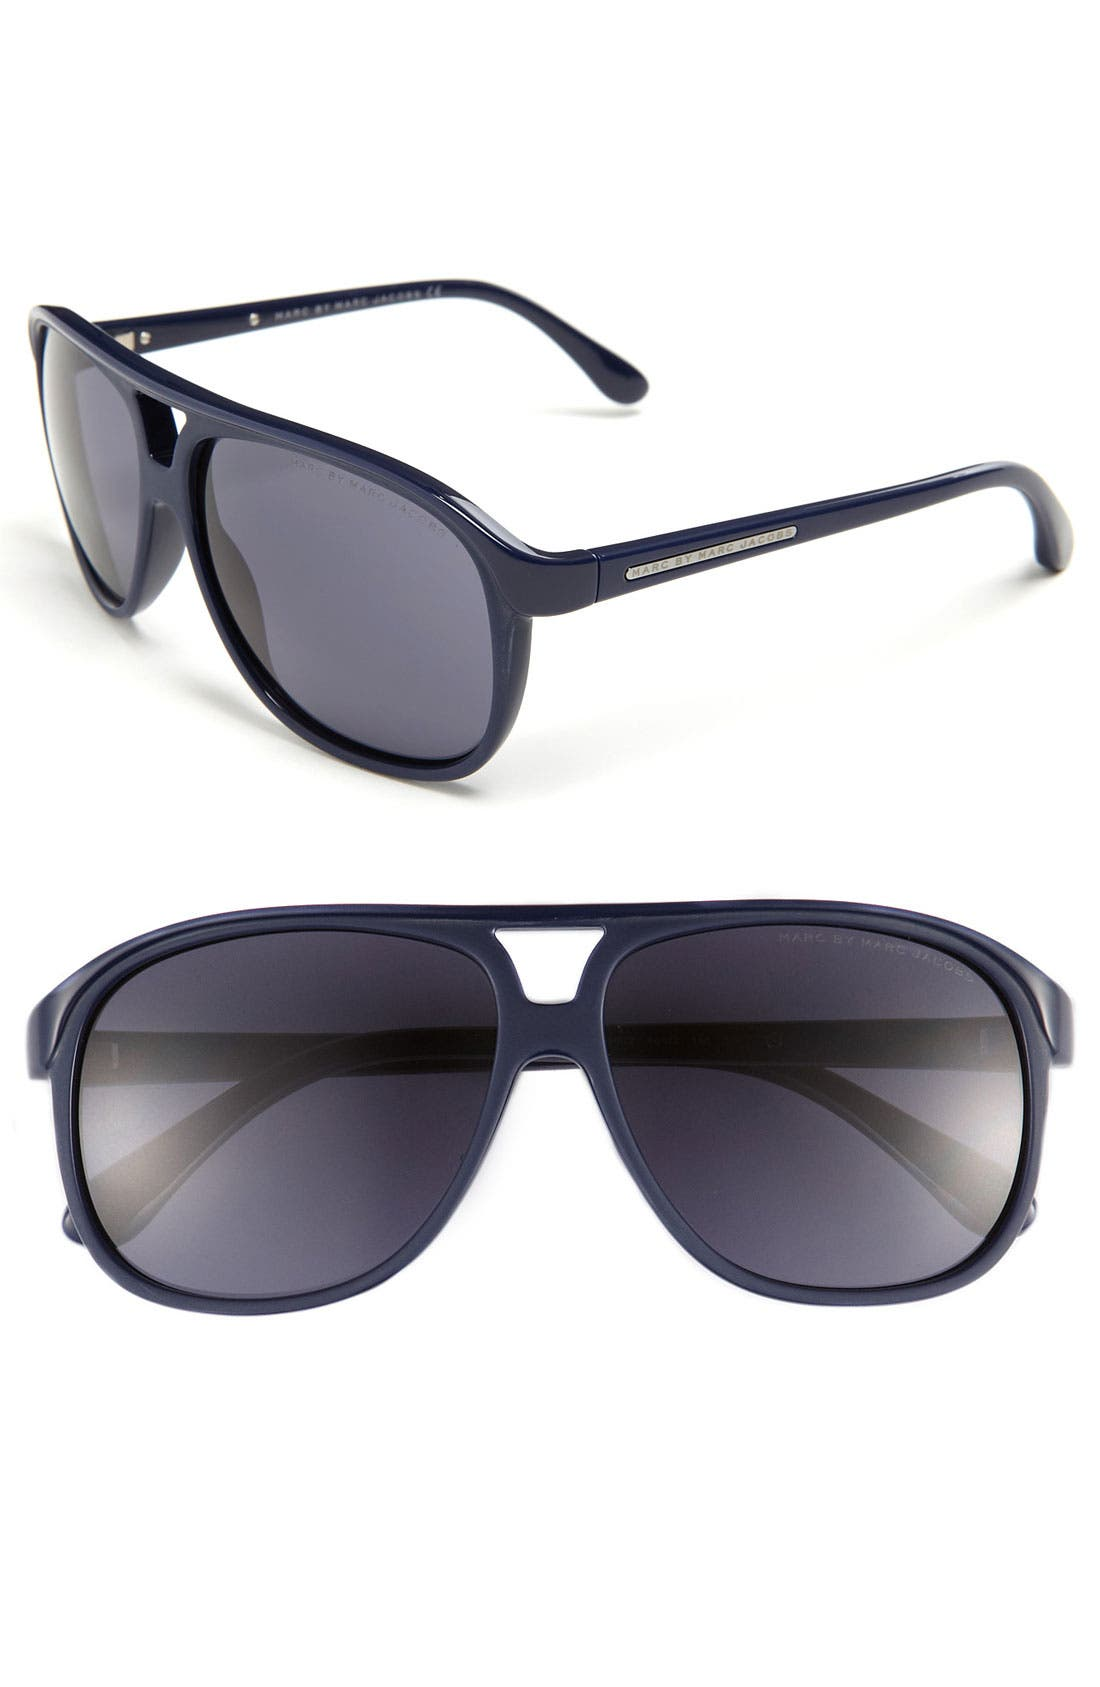 Main Image - MARC BY MARC JACOBS 59mm Retro Sunglasses